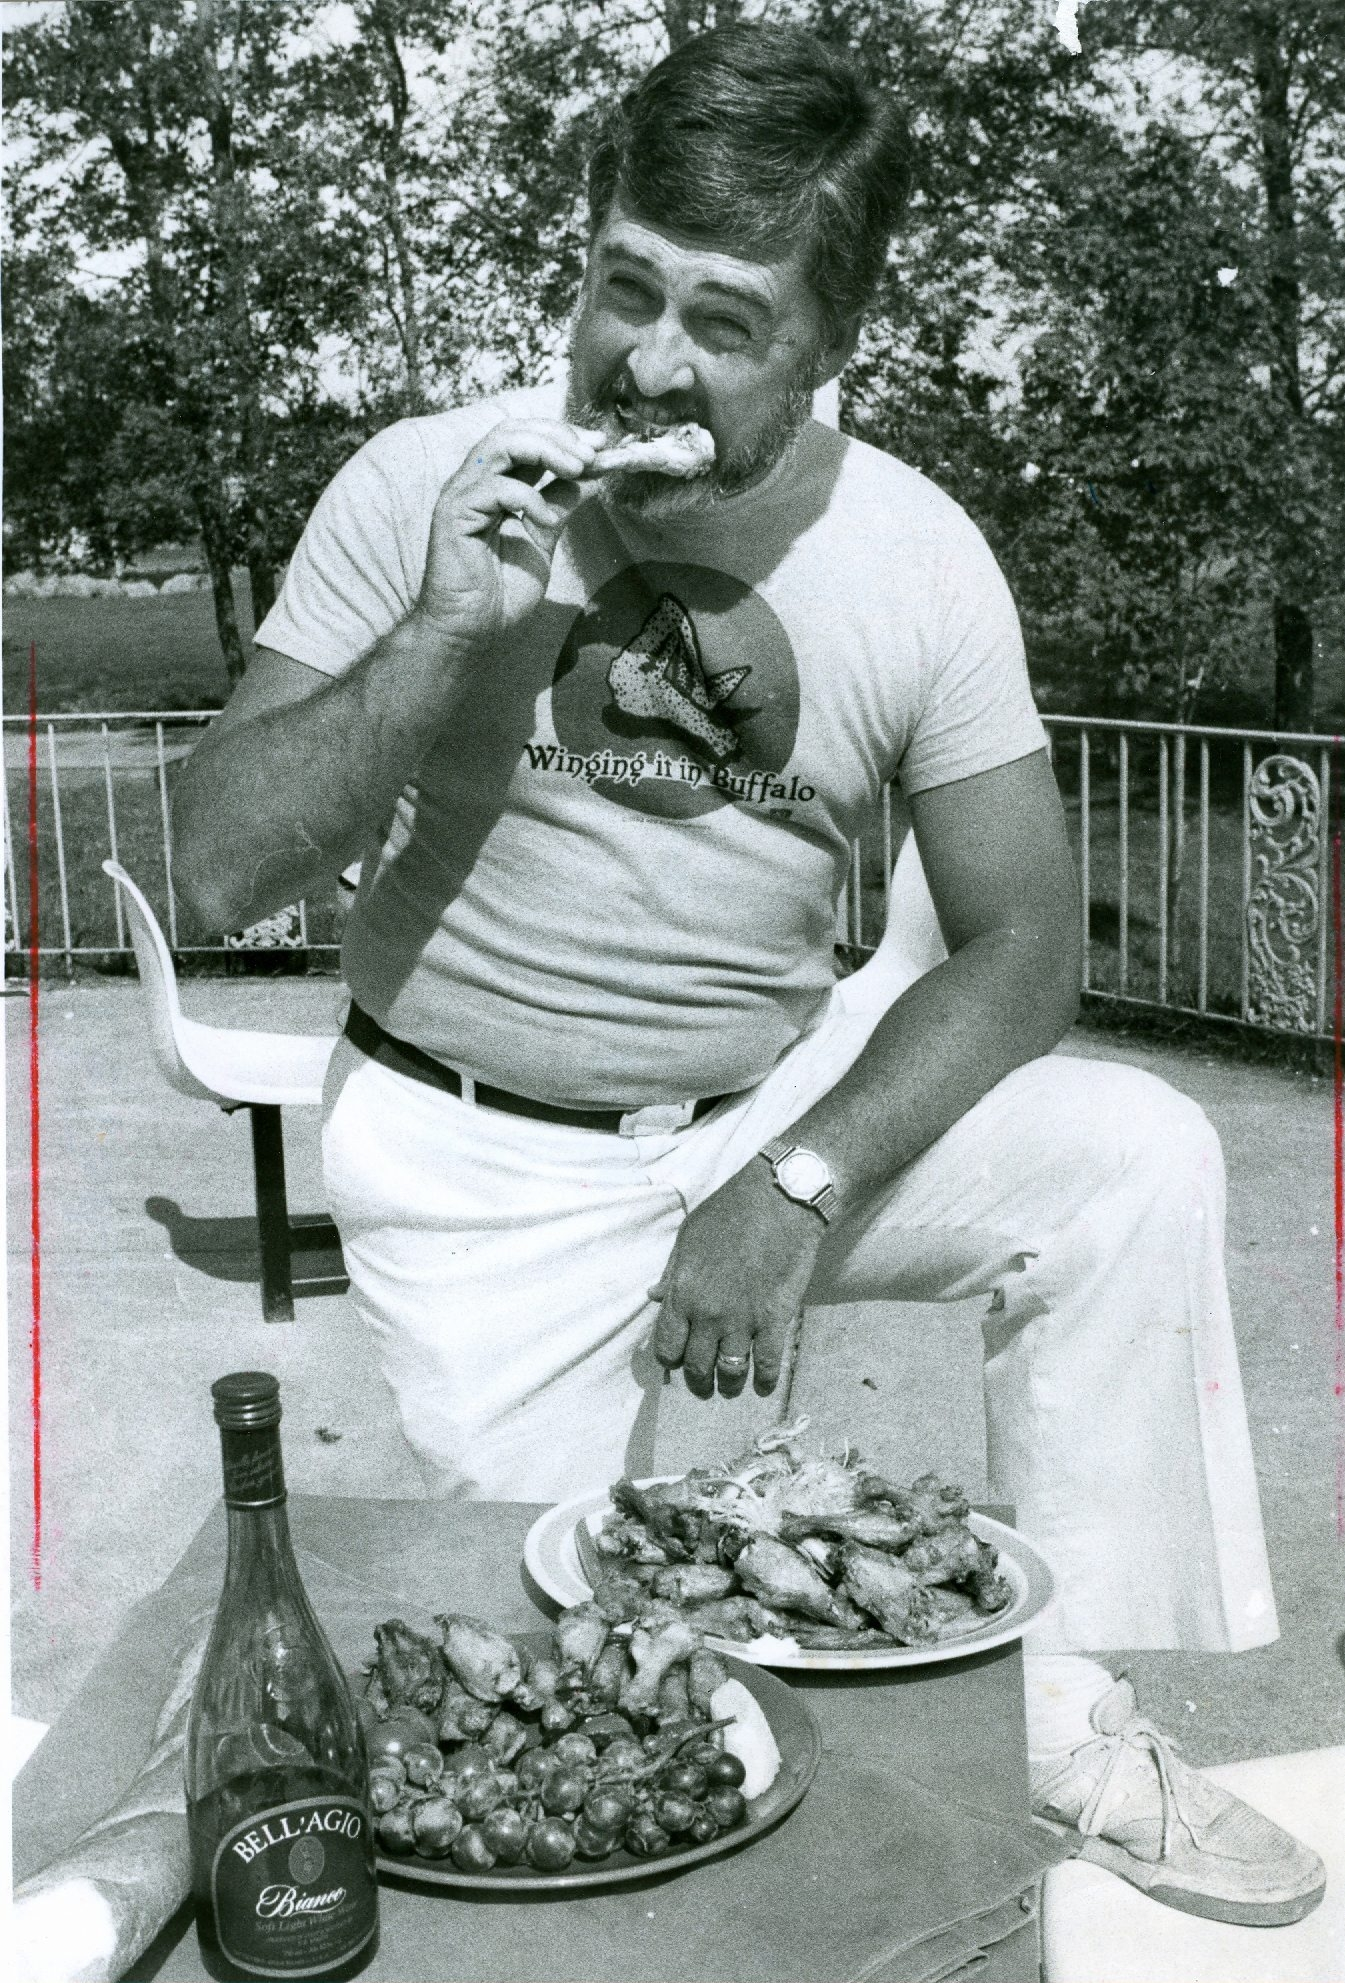 George W. Schaeffer won a healthy wing contest in 1984.